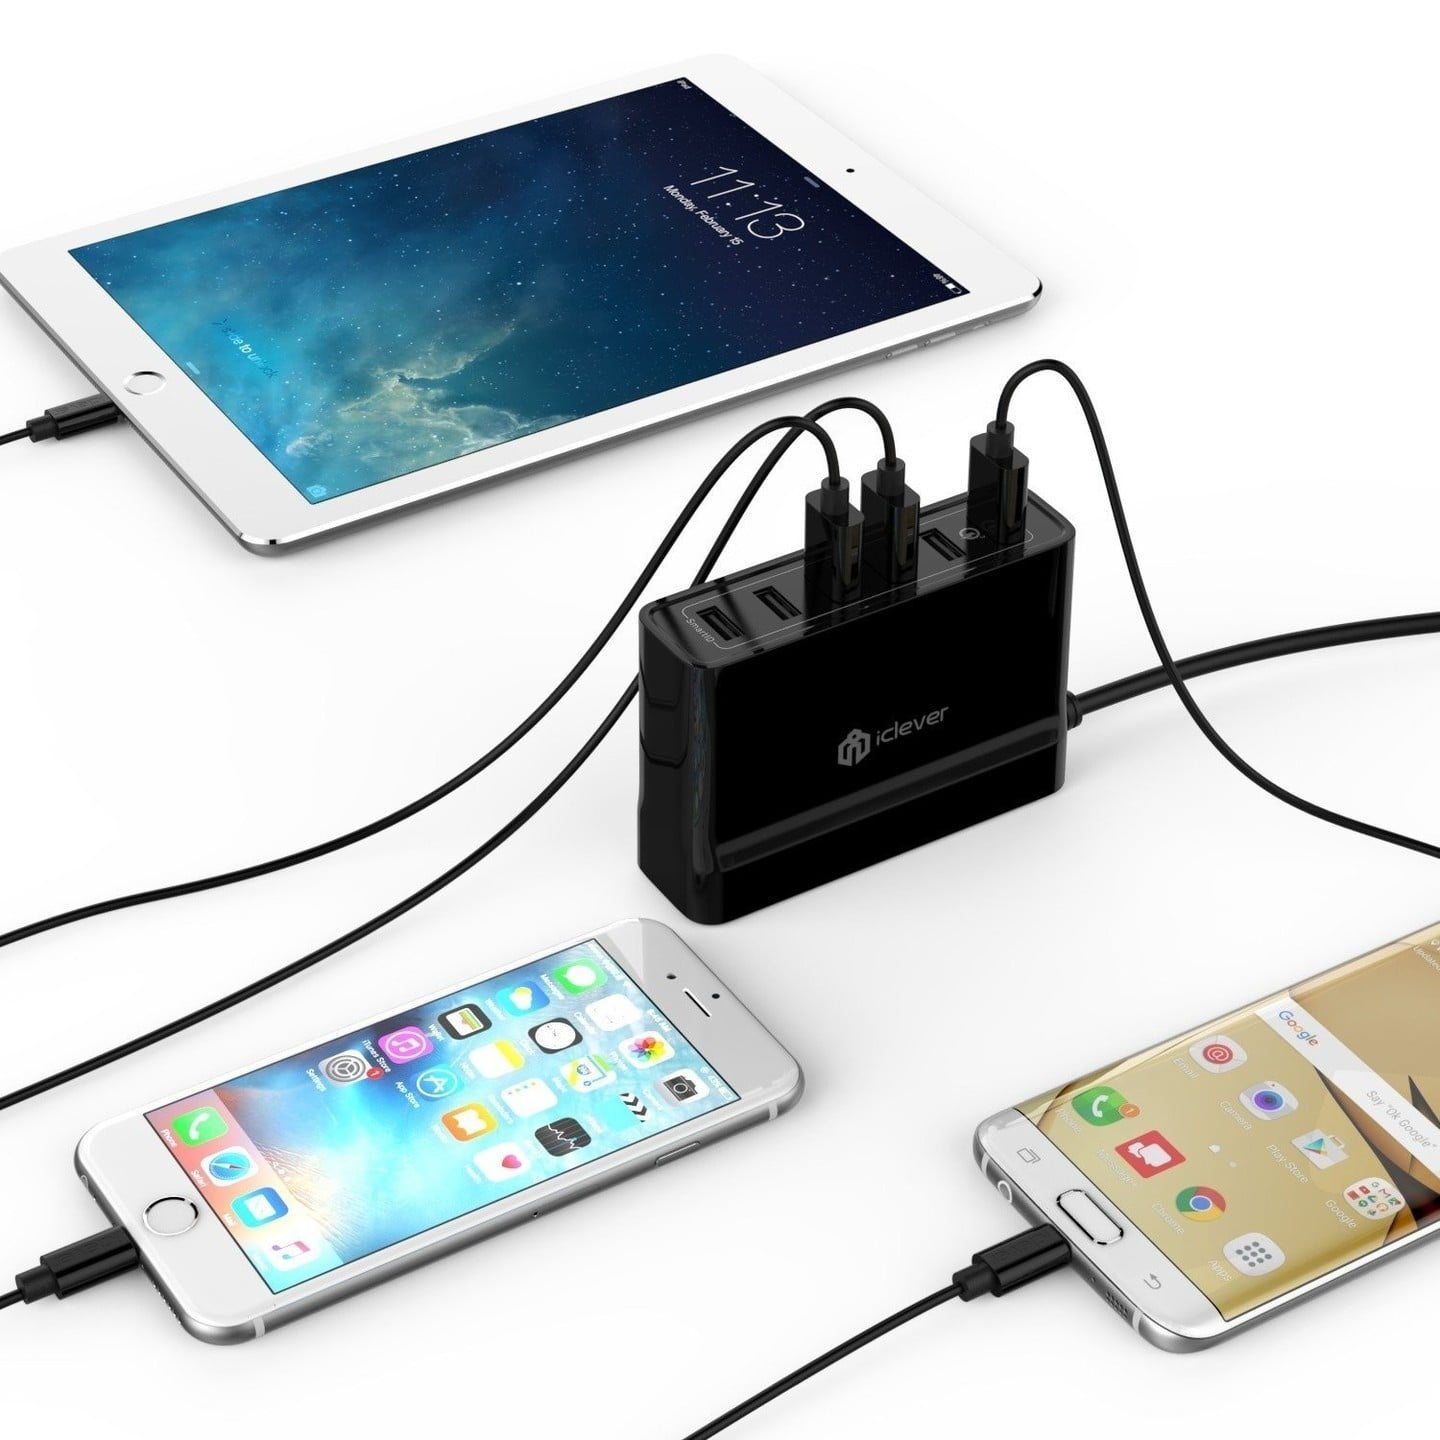 iClever BoostCube+ 6 Port USB Wall Charger